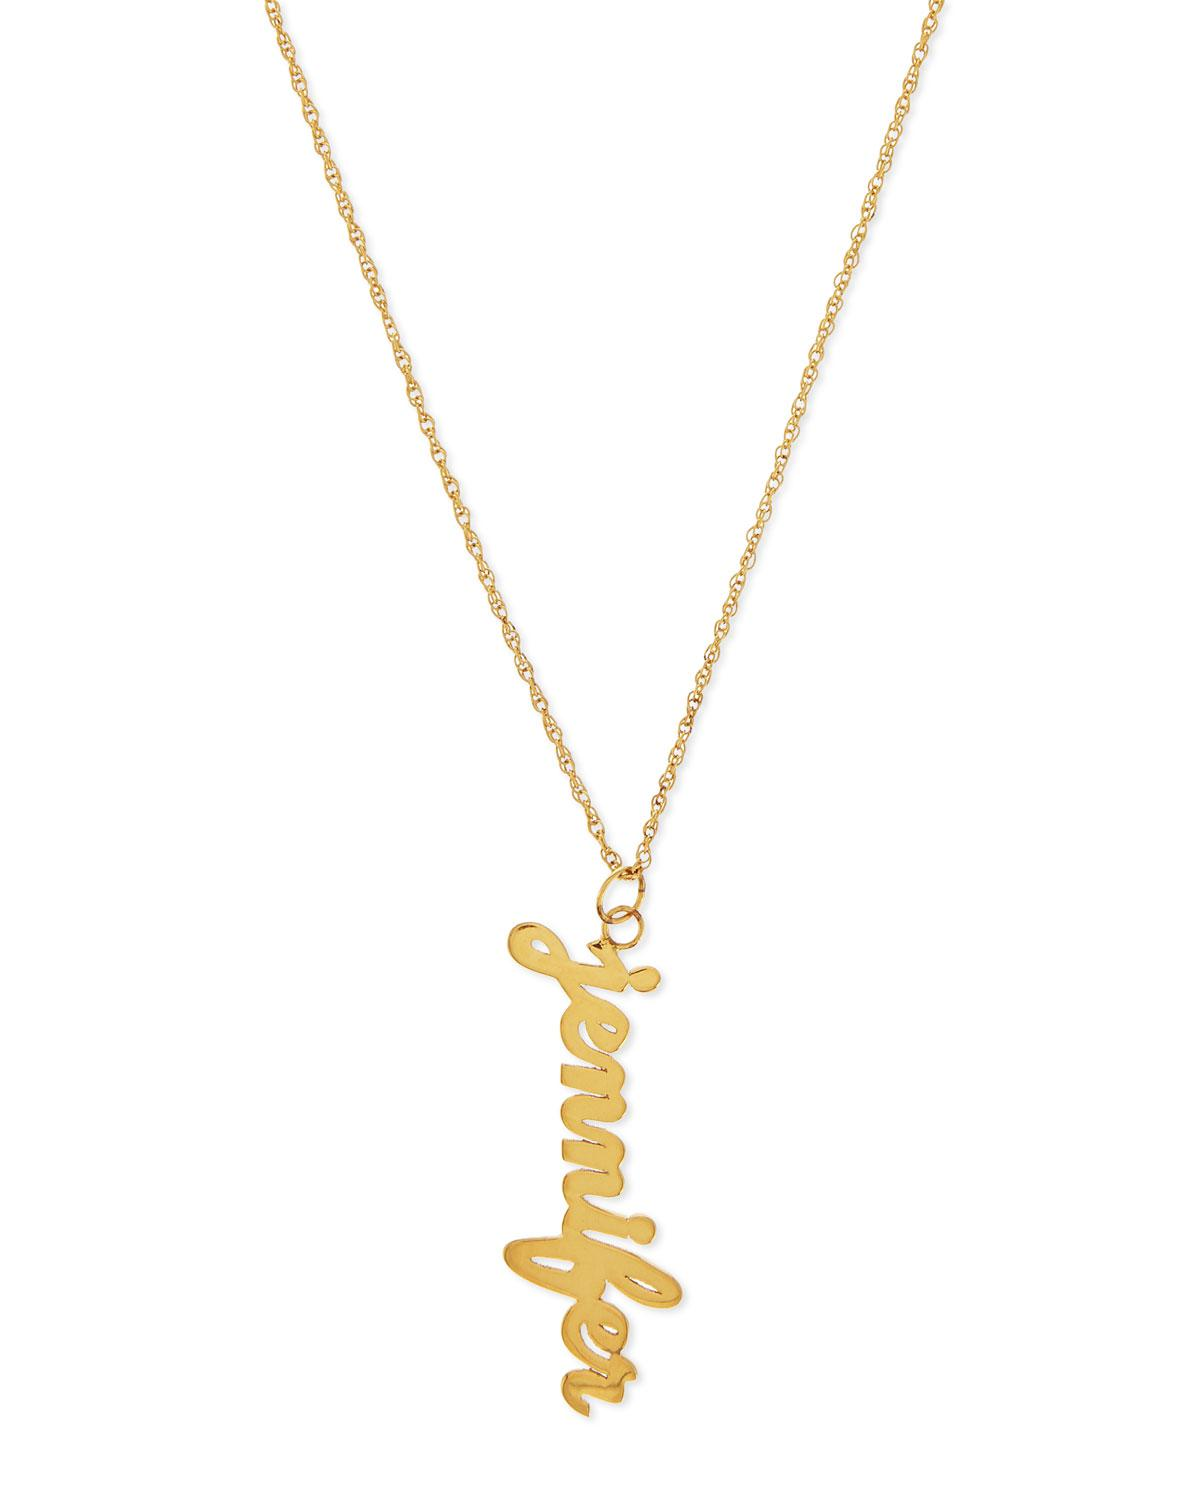 Jennifer Zeuner Serafina Vertical Gold Vermeil Necklace FmlvD